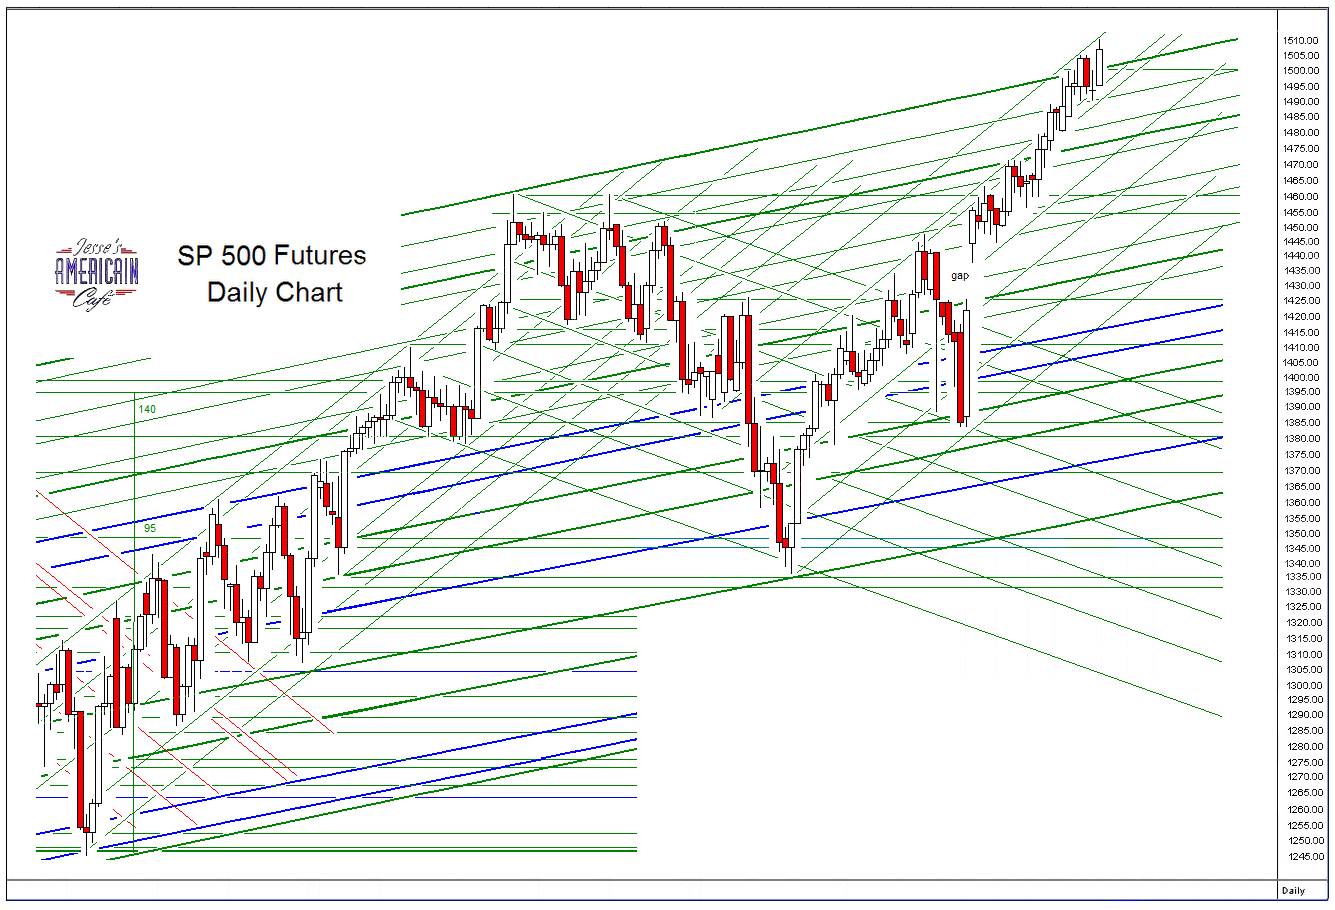 SP 500 and NDX Futures Daily Charts - Fragility of Vain